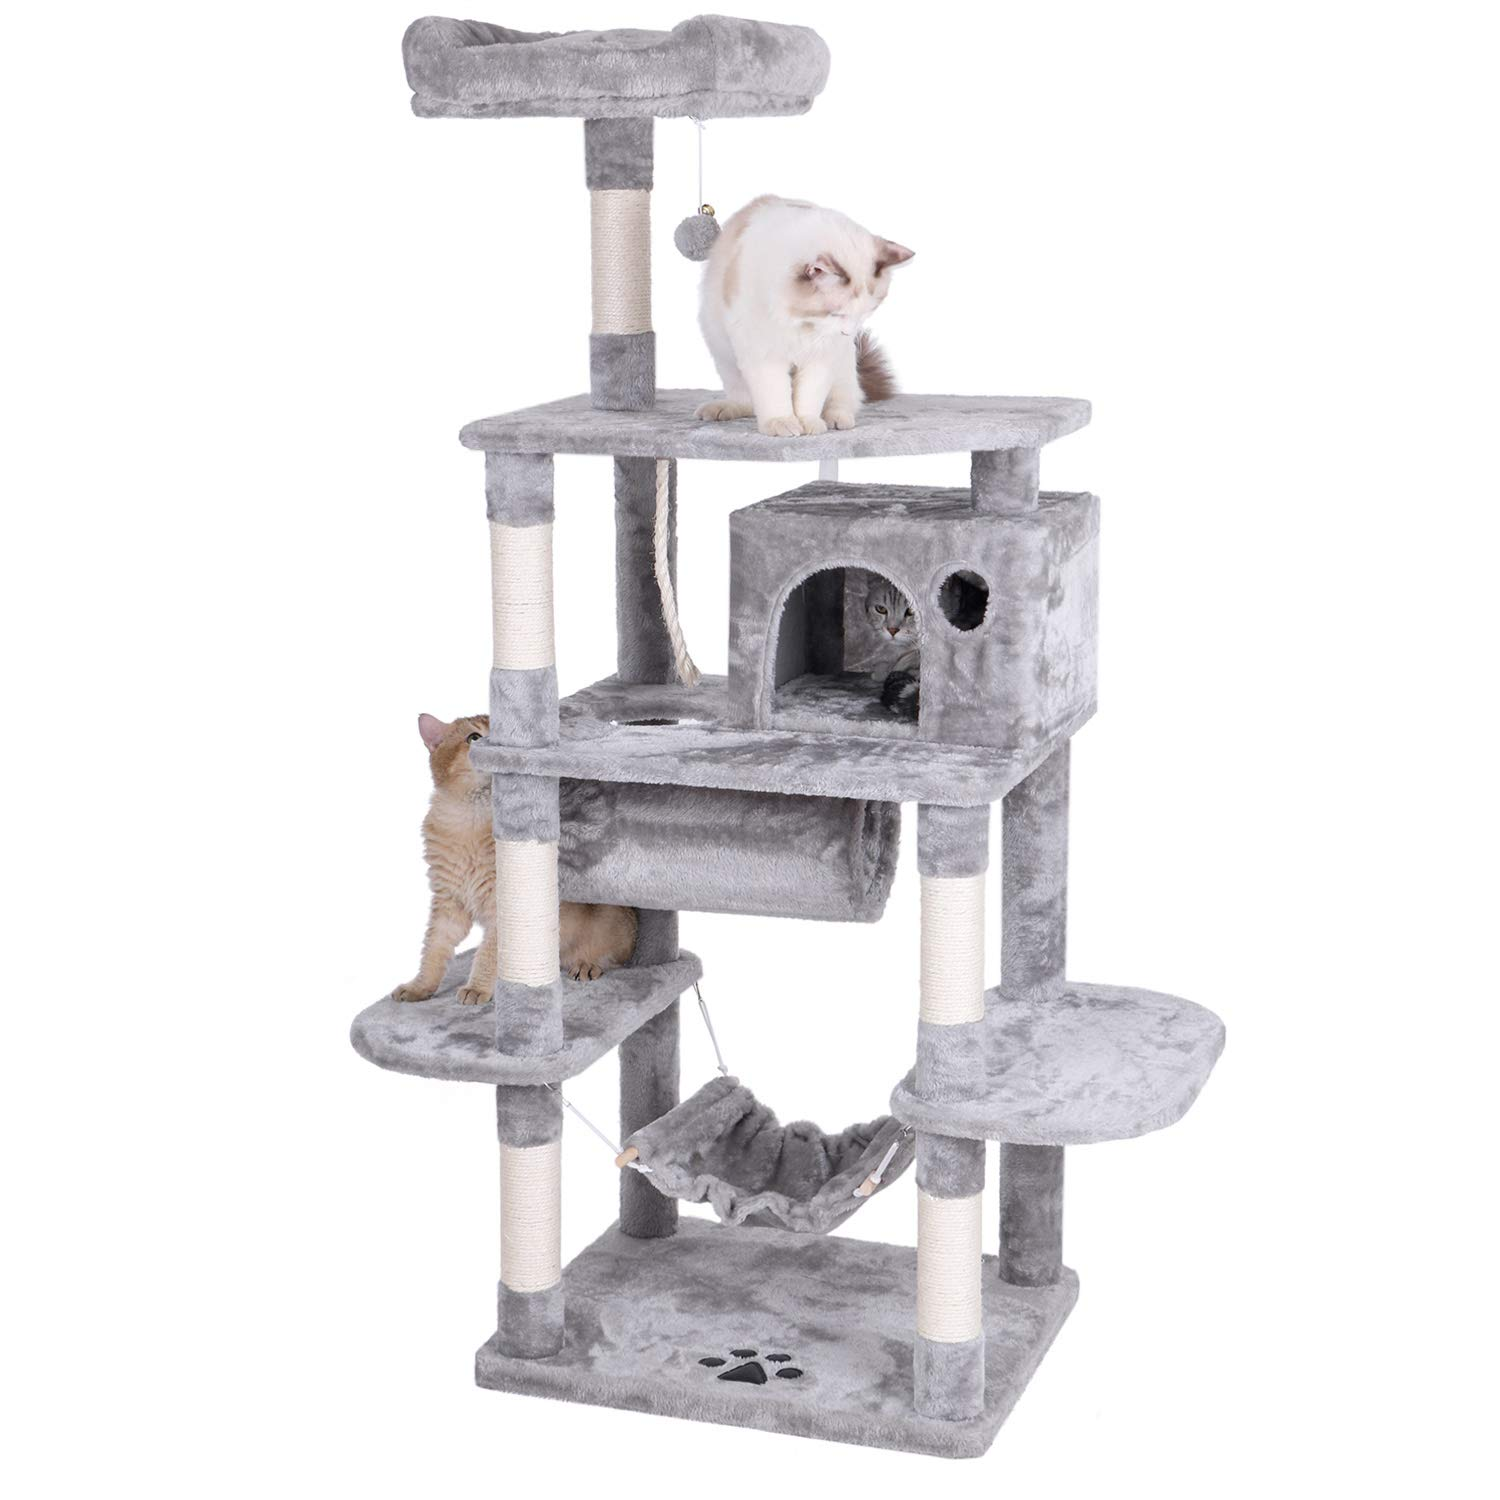 BEWISHOME Cat Tree with Sisal Scratching Posts Perch House Hammock Tunnel, Cat Tower Cat Condo Furniture Kitten Activity Center Pet Play House Kitty Playground, Light Grey MMJ02G by BEWISHOME